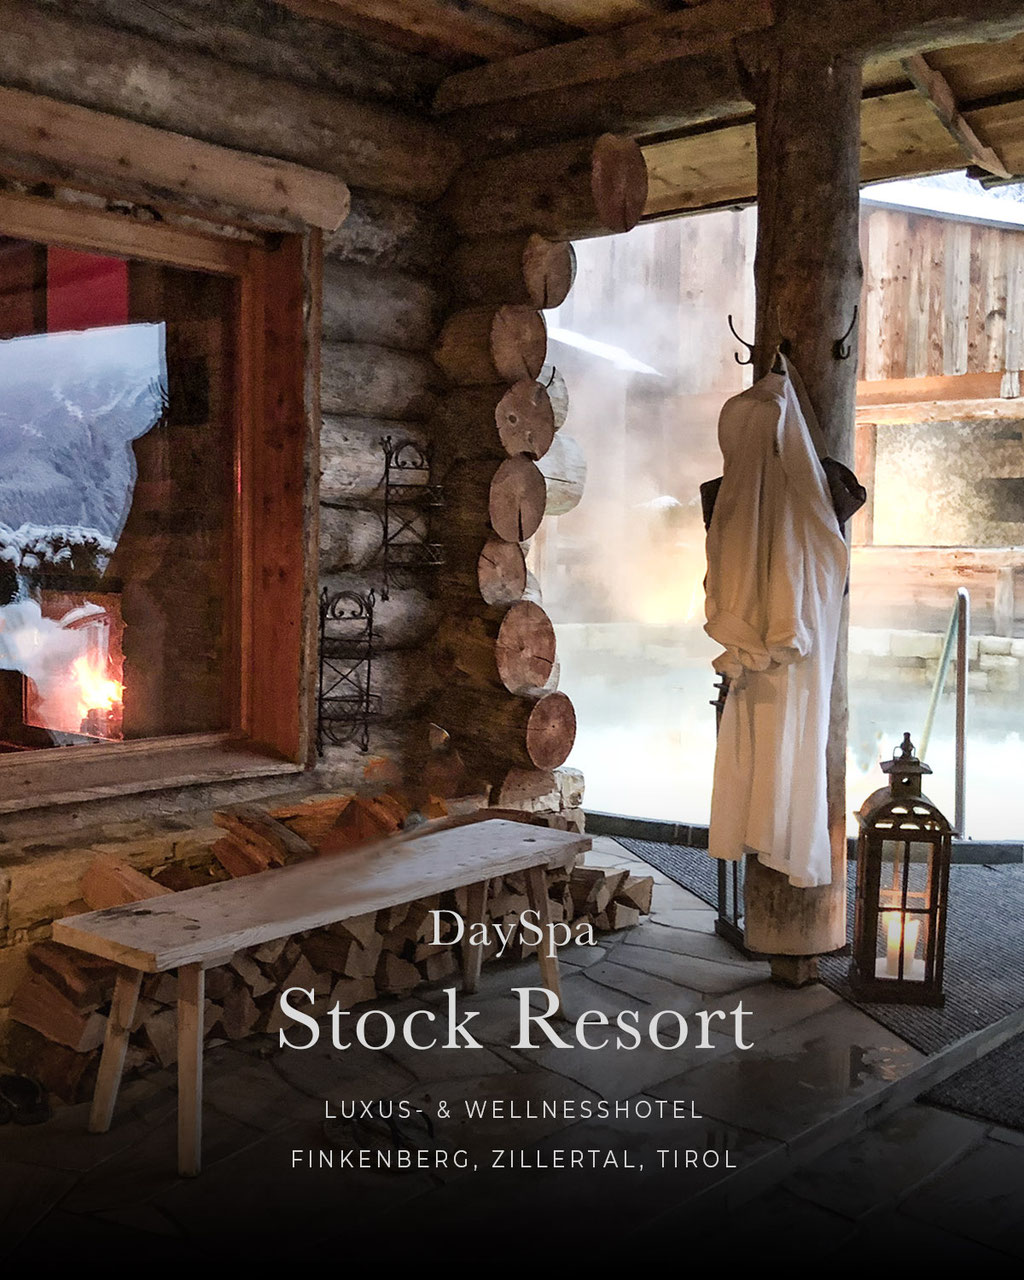 DAY SPA Stock Resort, Zillertal - Tirol